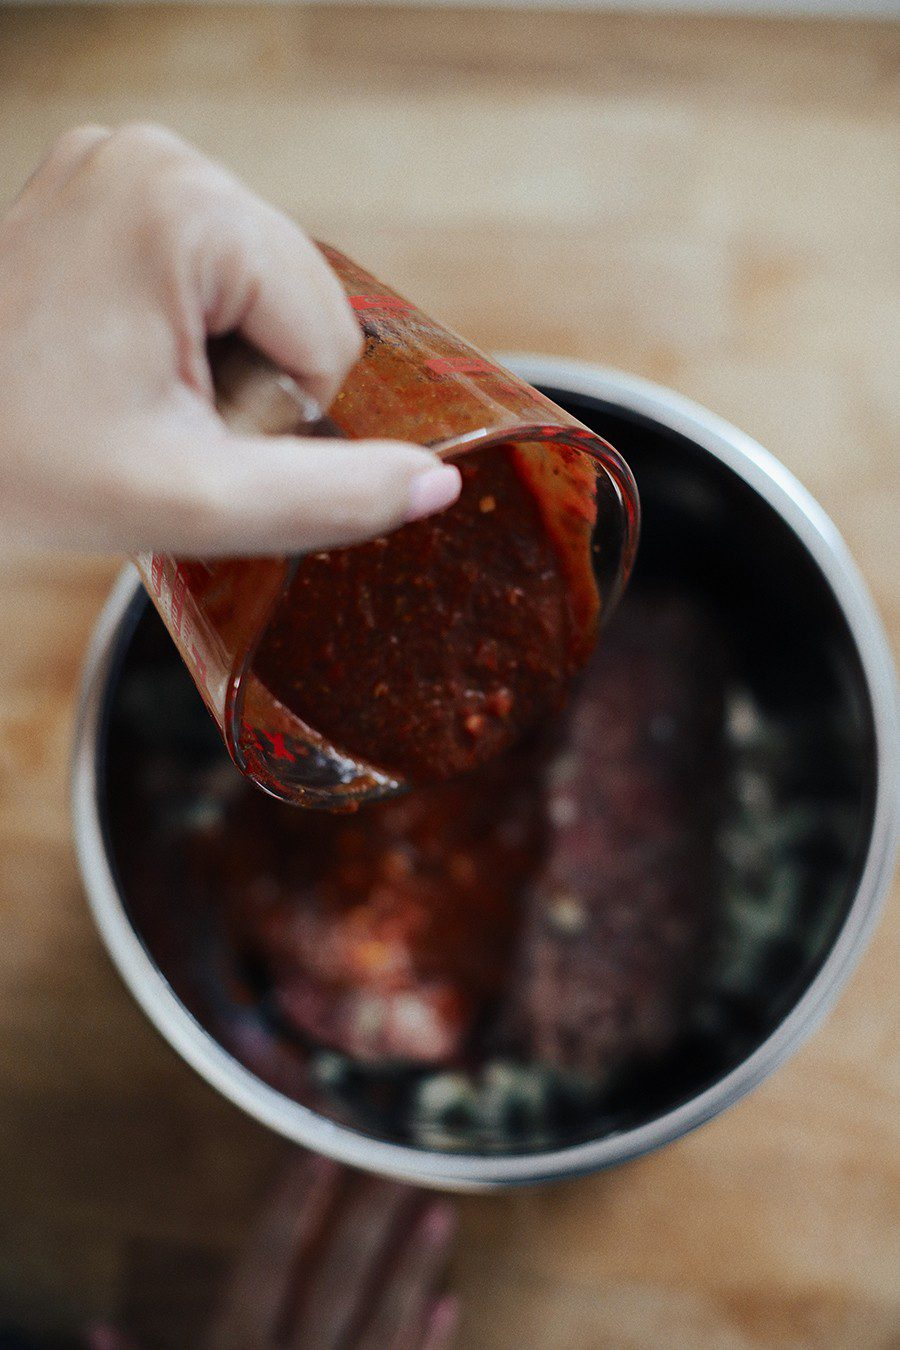 Easy Weeknight Crockpot Meals: Slow Cooker Barbacoa Beef Tacos | Omaha Steaks by popular Florida lifestyle blog, Fresh Mommy Blog: image of a woman pouring a marinade on some raw beef in a slow cooker.